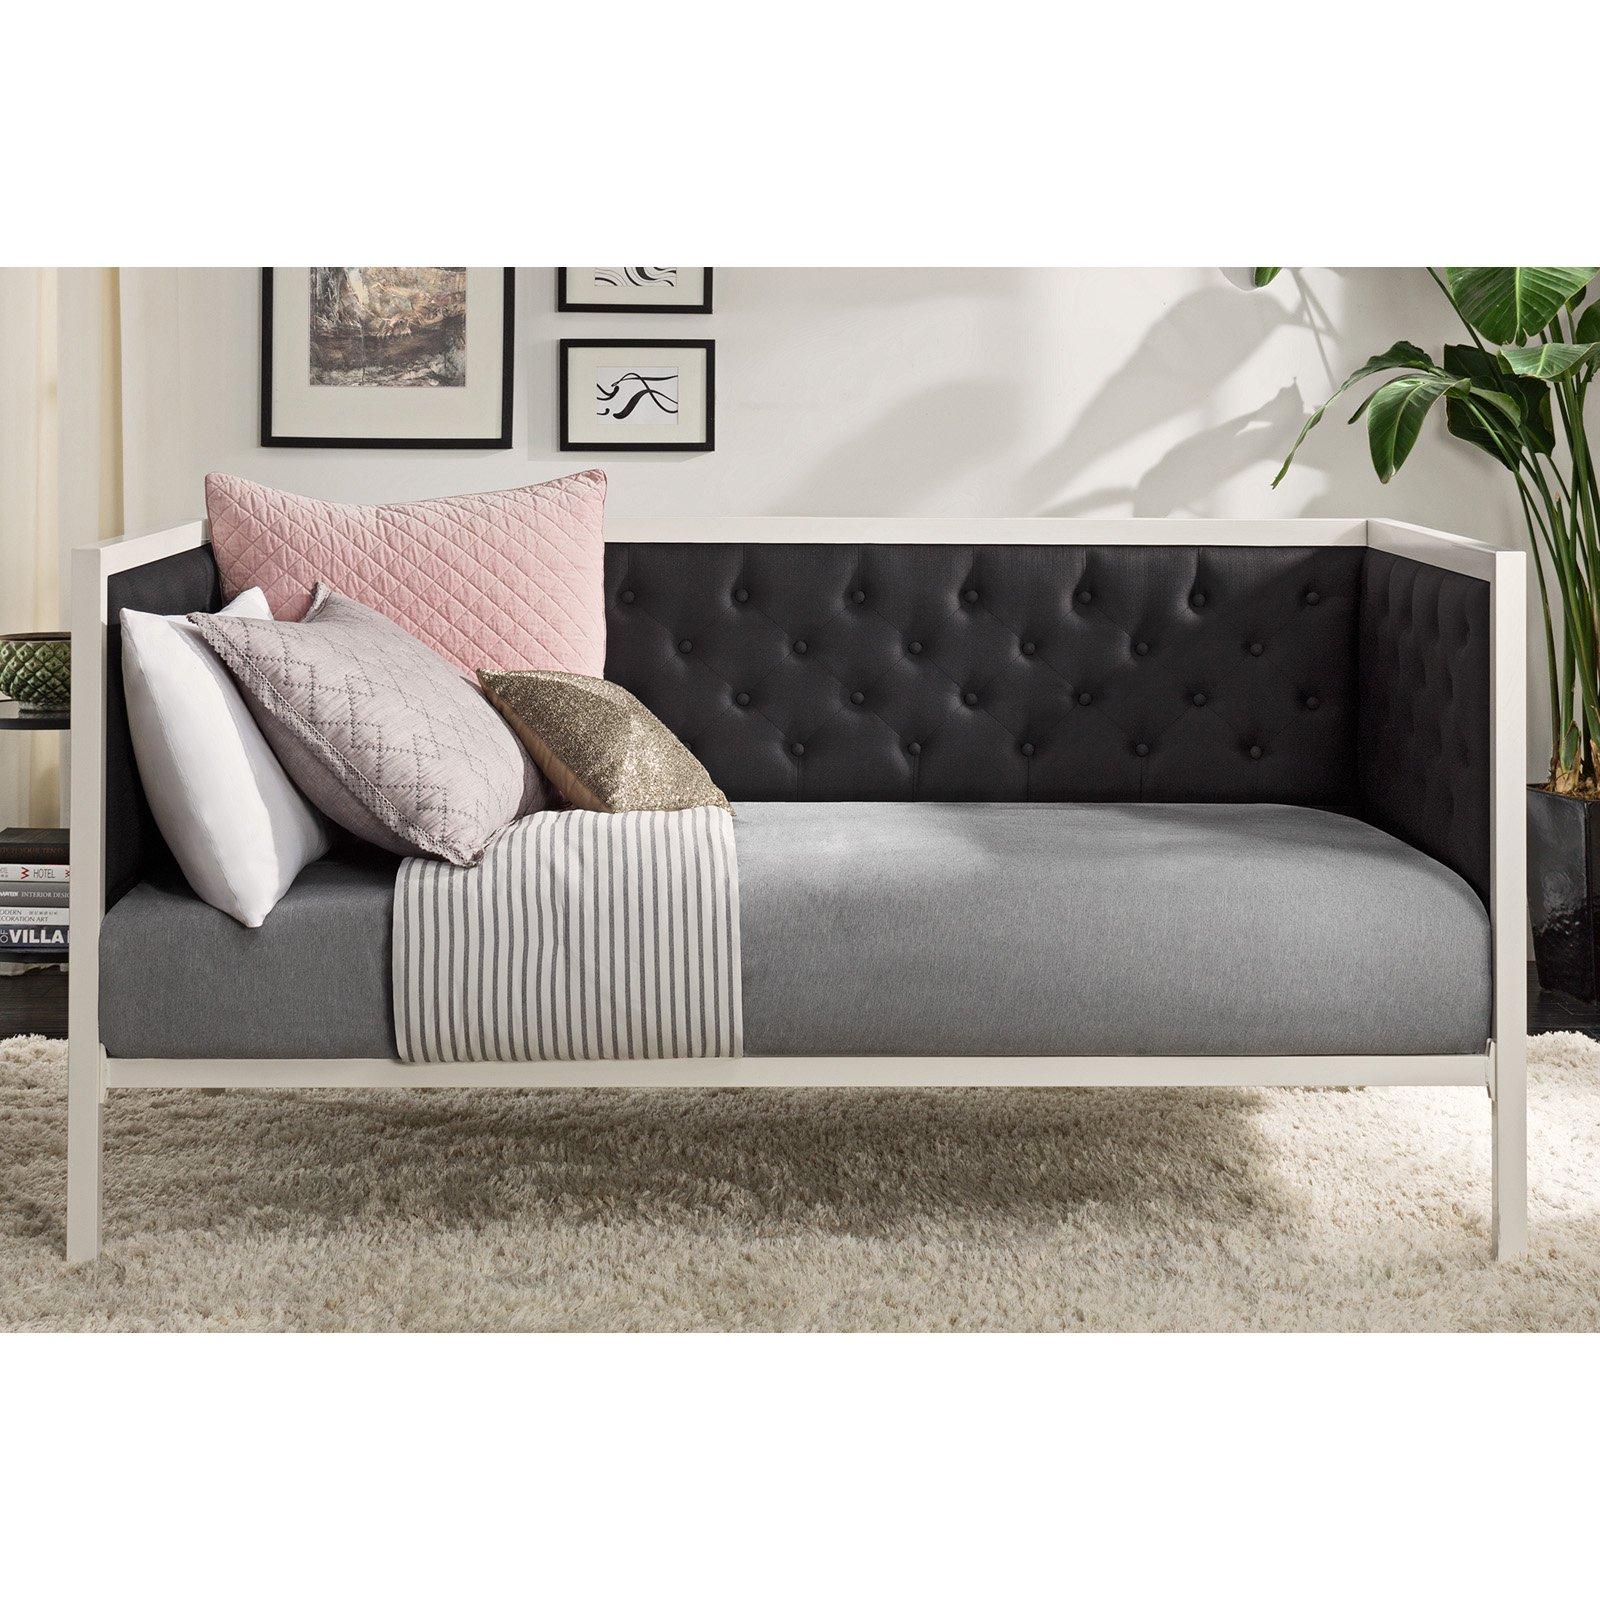 DHP Soho Modern Day Bed, White Metal with Black Linen, Multiple Sizes by Dorel Home Products